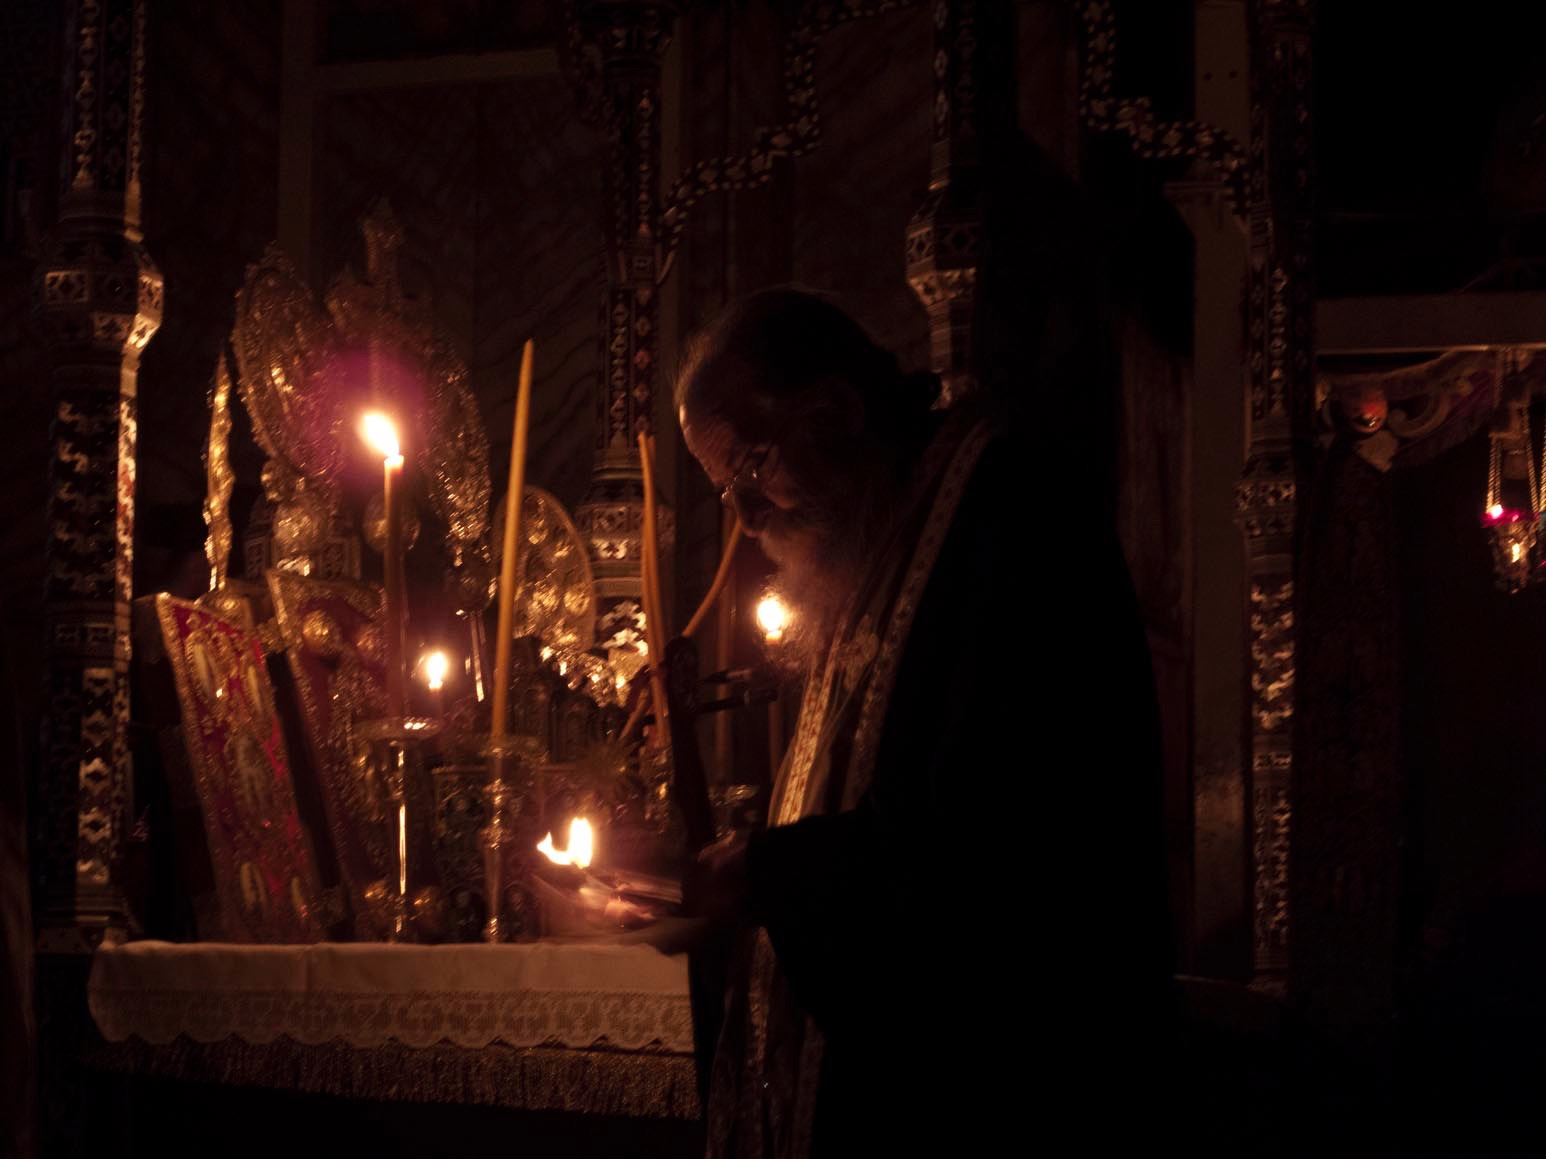 At the holy altar on the Feast of the Saint, Father Pavlos borrows the glow of a few tapers to read names of those who have sought his prayers.